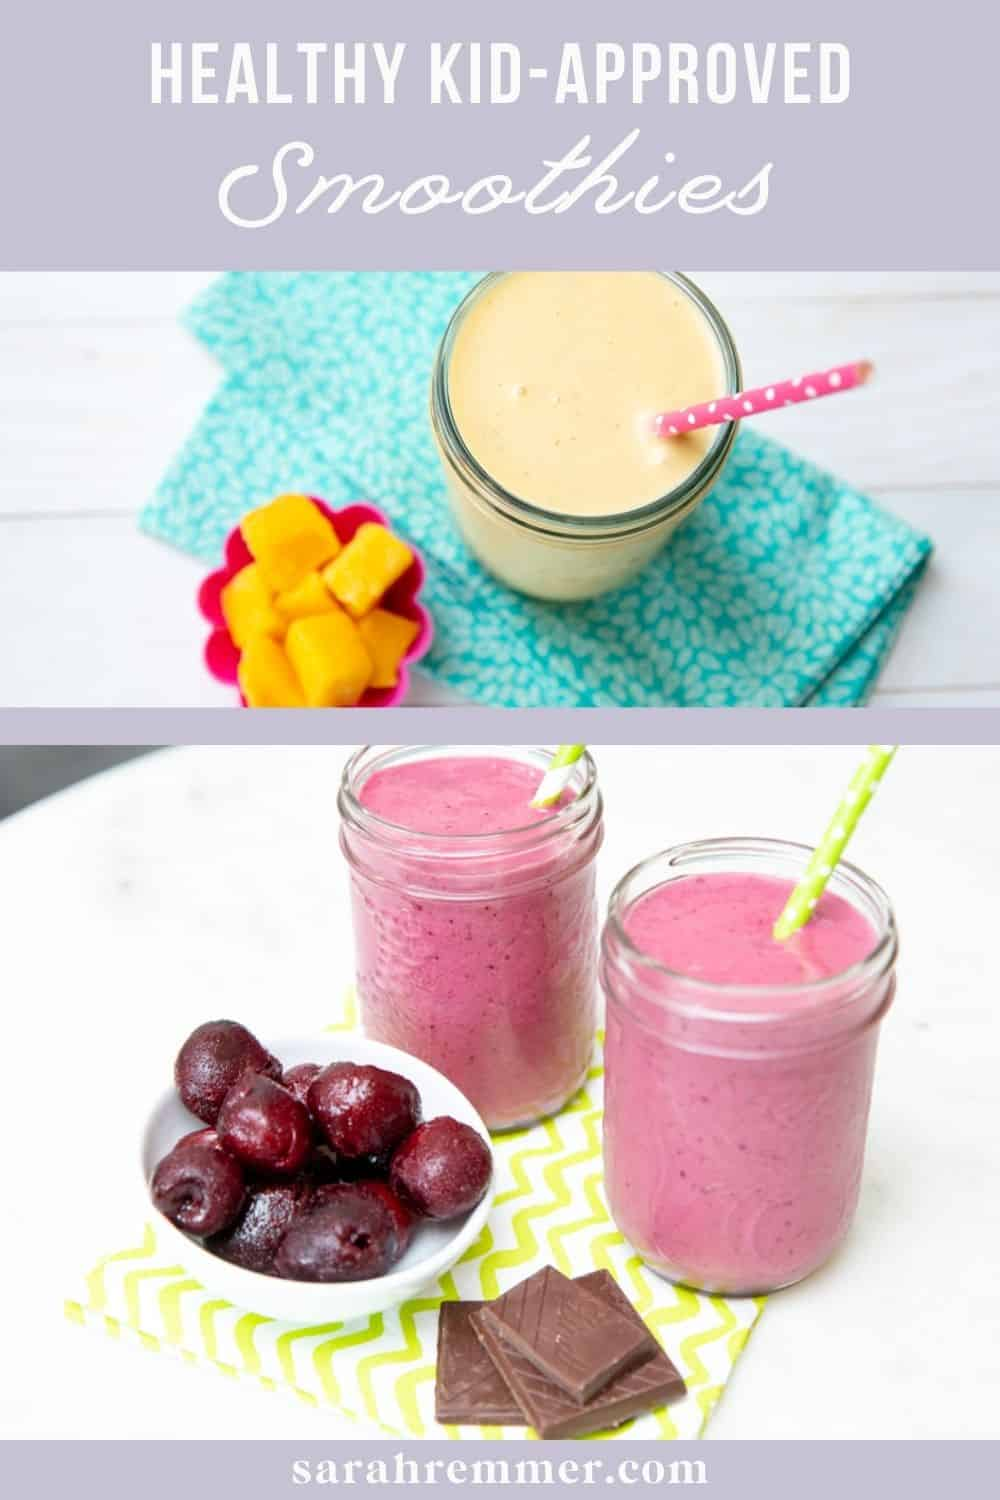 In our house, we are what you might say a little smoothie-obsessed! As a pediatric dietitian and busy mom of three kids, smoothies are a go-to because they are literally meals-in-a-jar. Here are my family's kid-approved smoothies that are also nutritious.